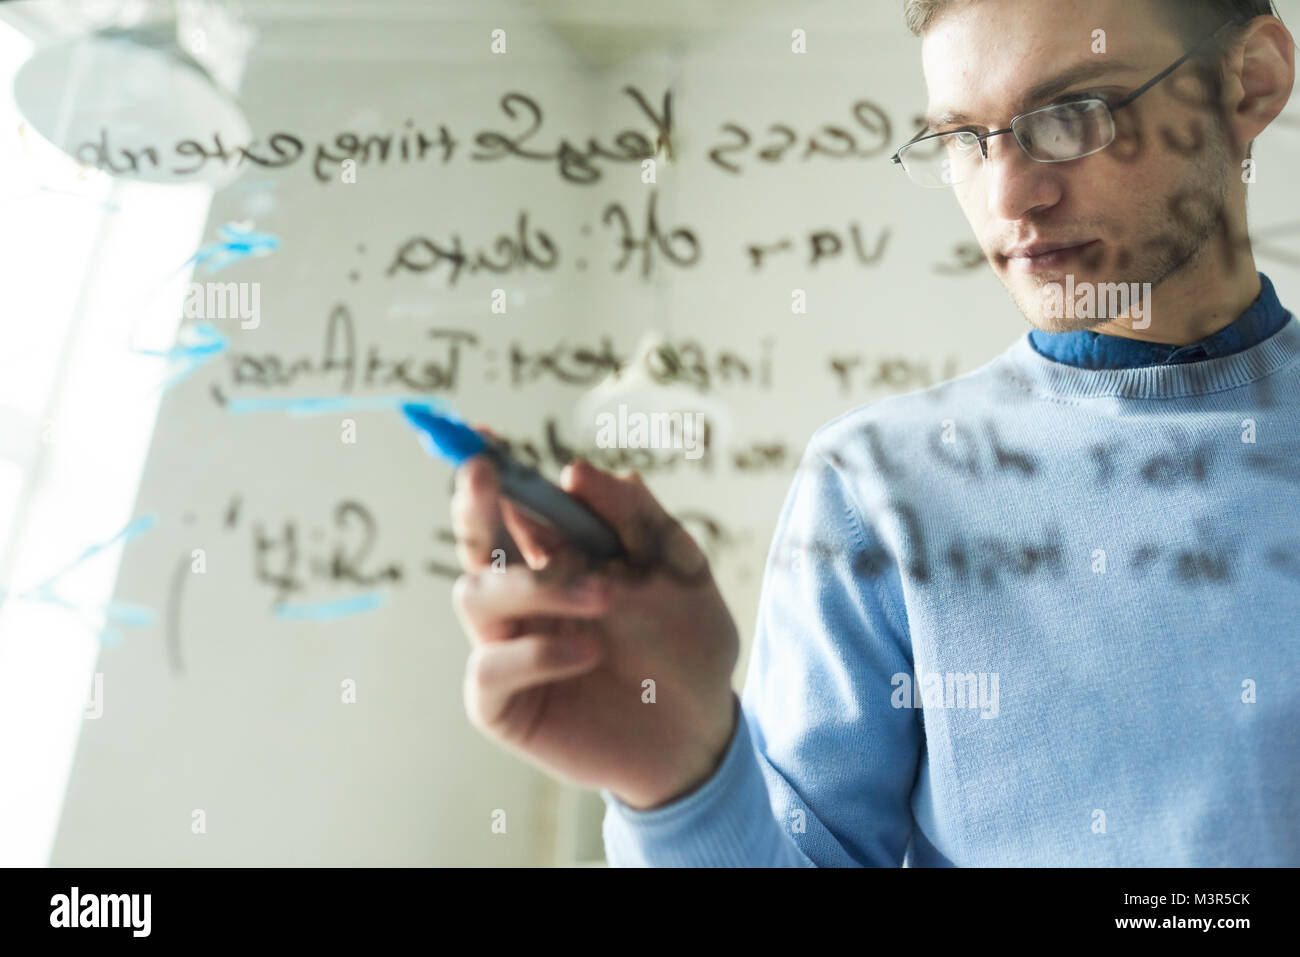 Young IT Professional Writing on Glass Wall - Stock Image